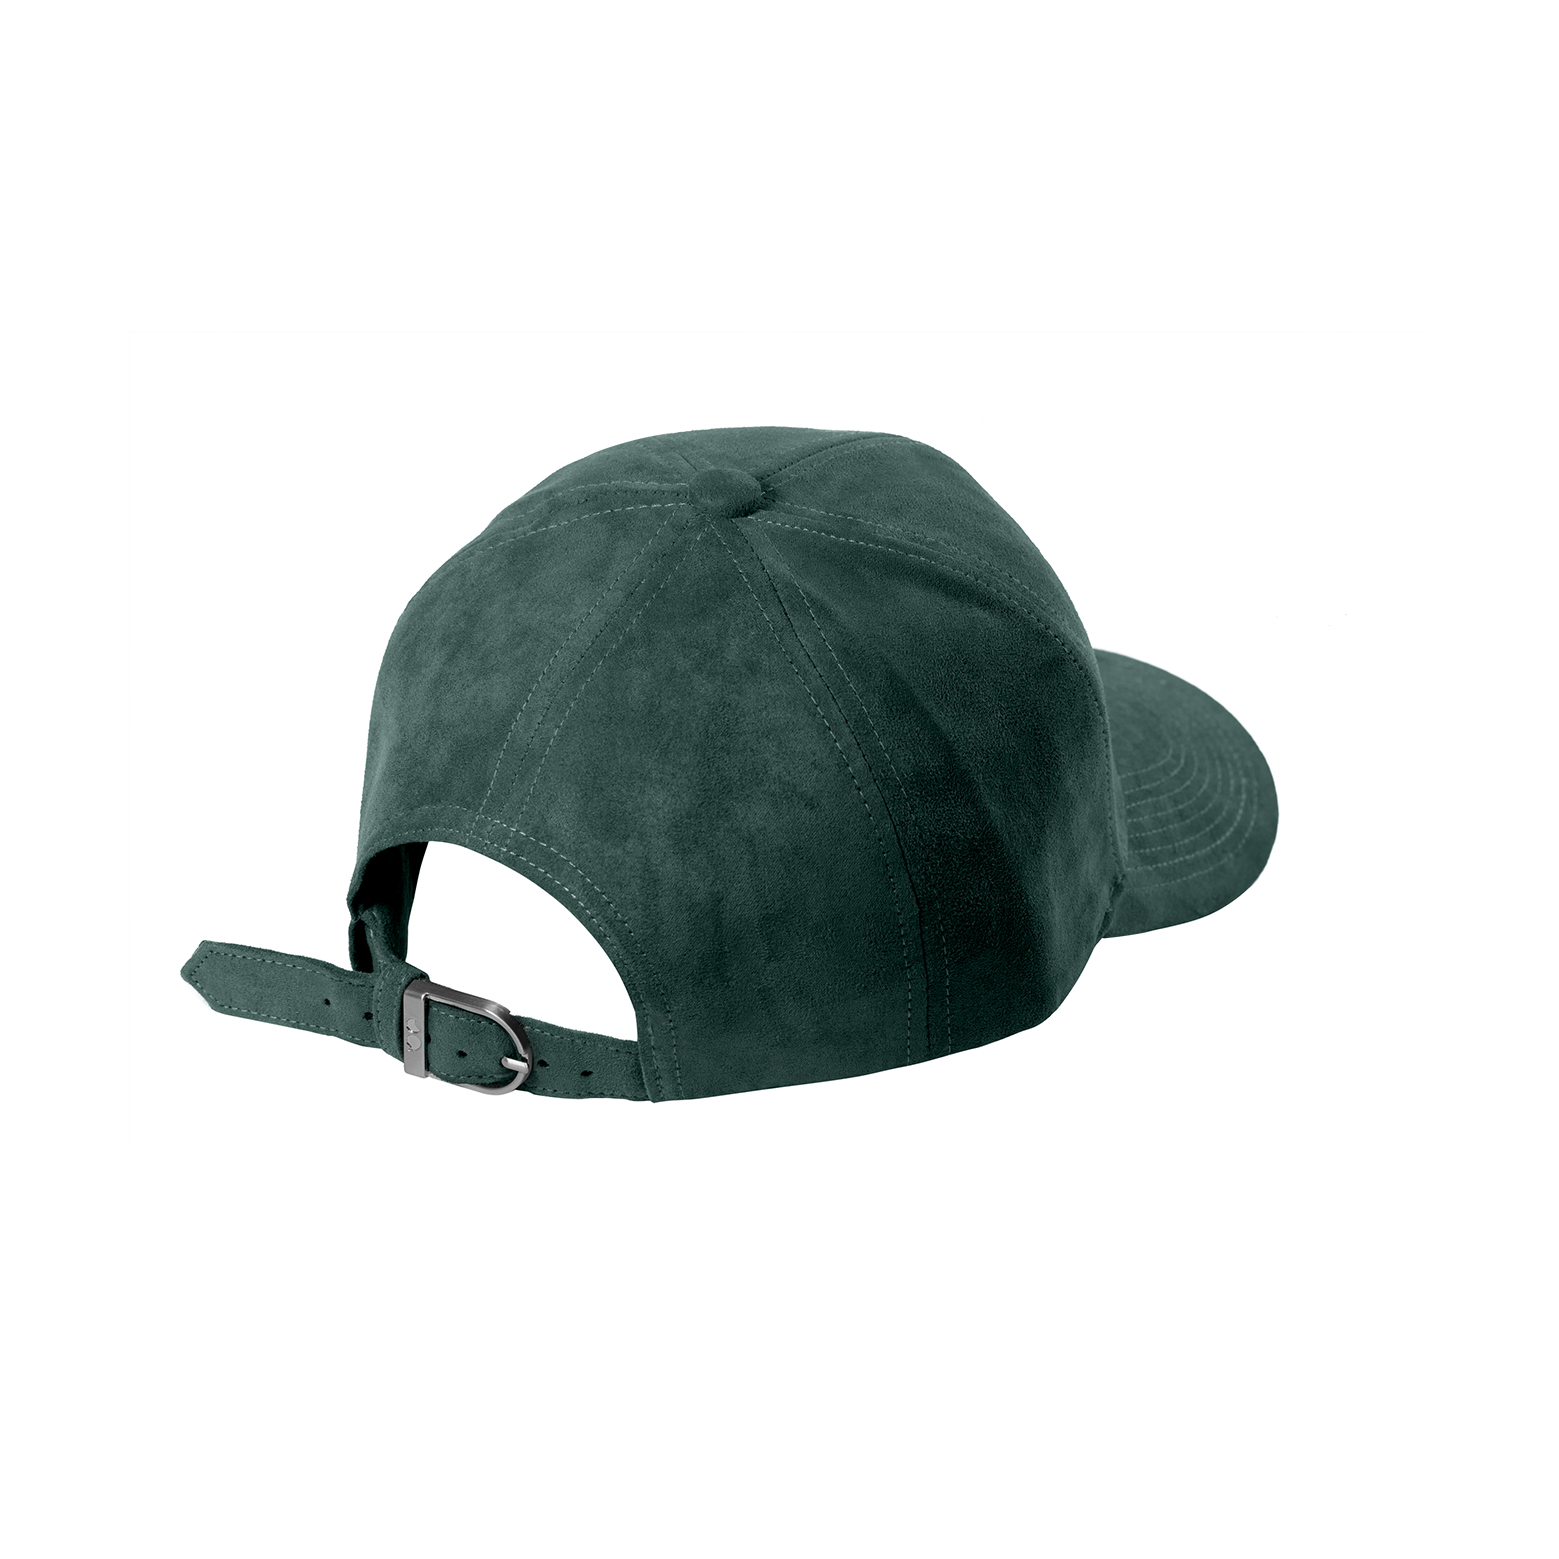 BASEBALL CAP PETROL GREEN SUEDE SILVER BACK SIDE